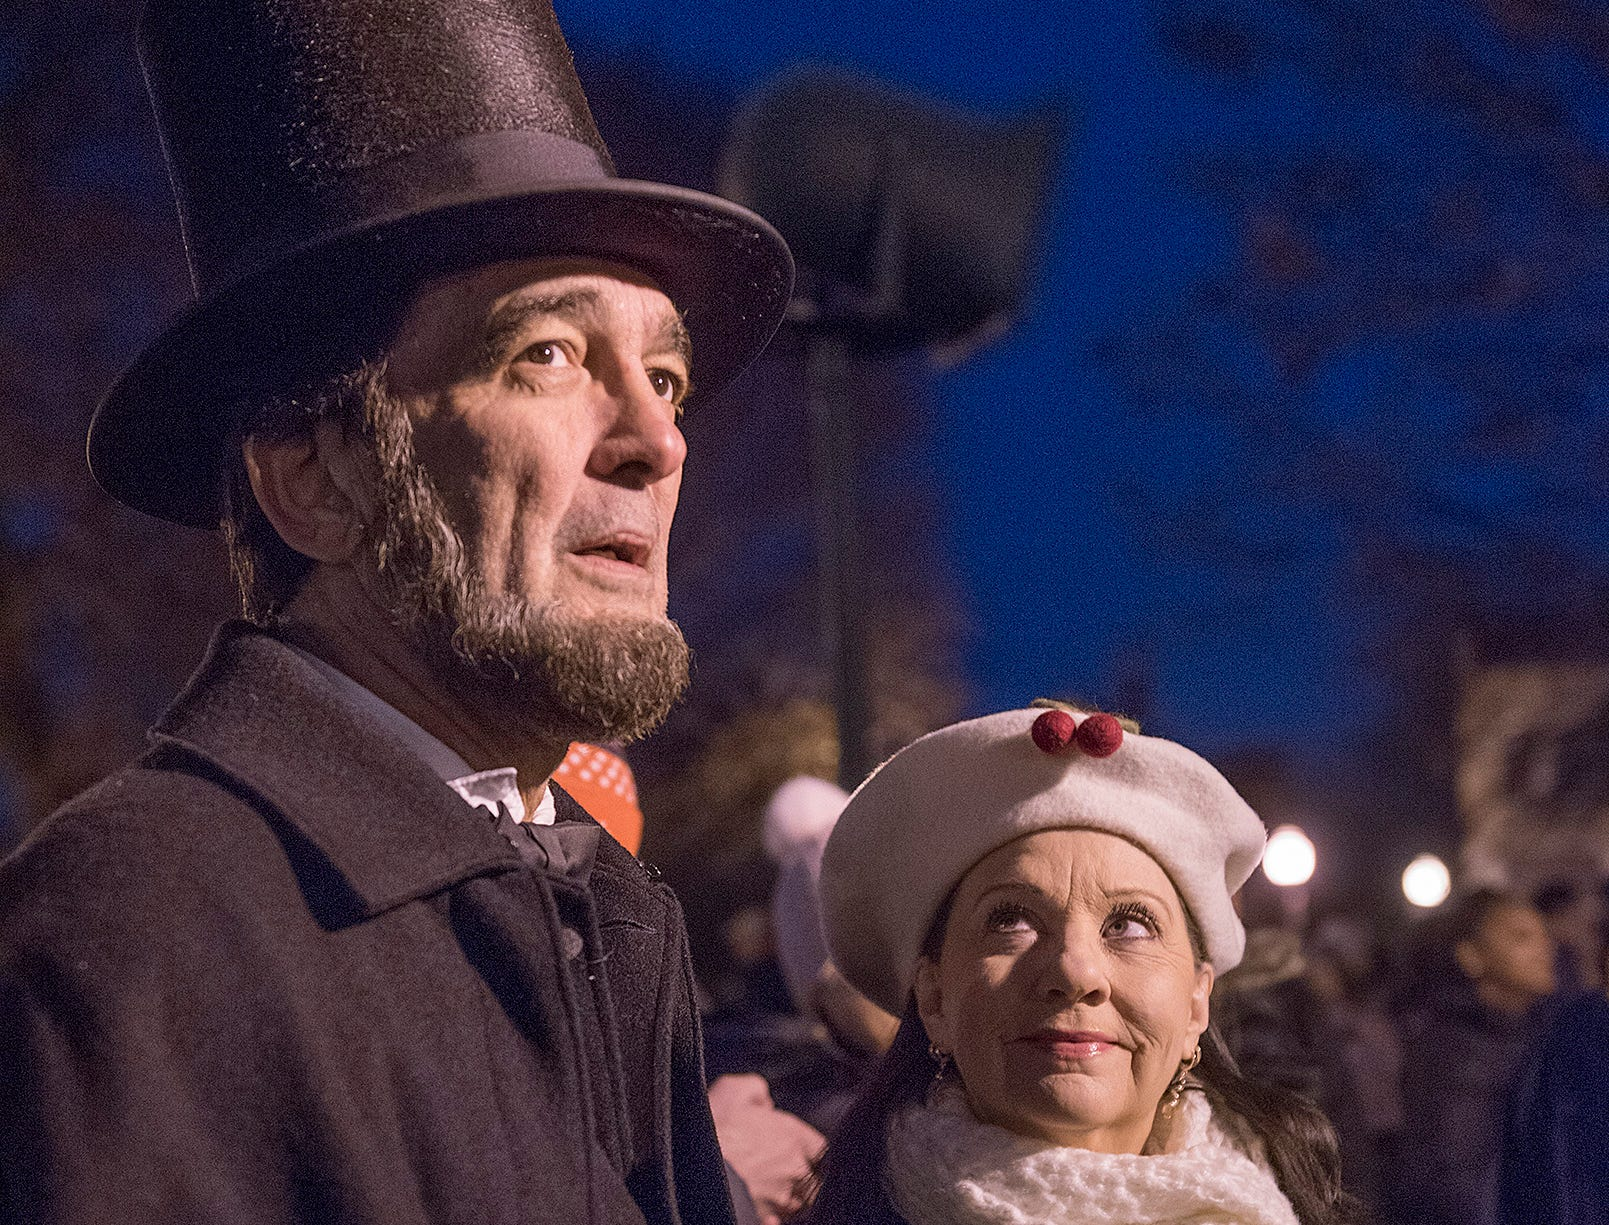 Ron Carley, as Abraham Lincoln, and Tina Hadley Carley, waiting for Santa.